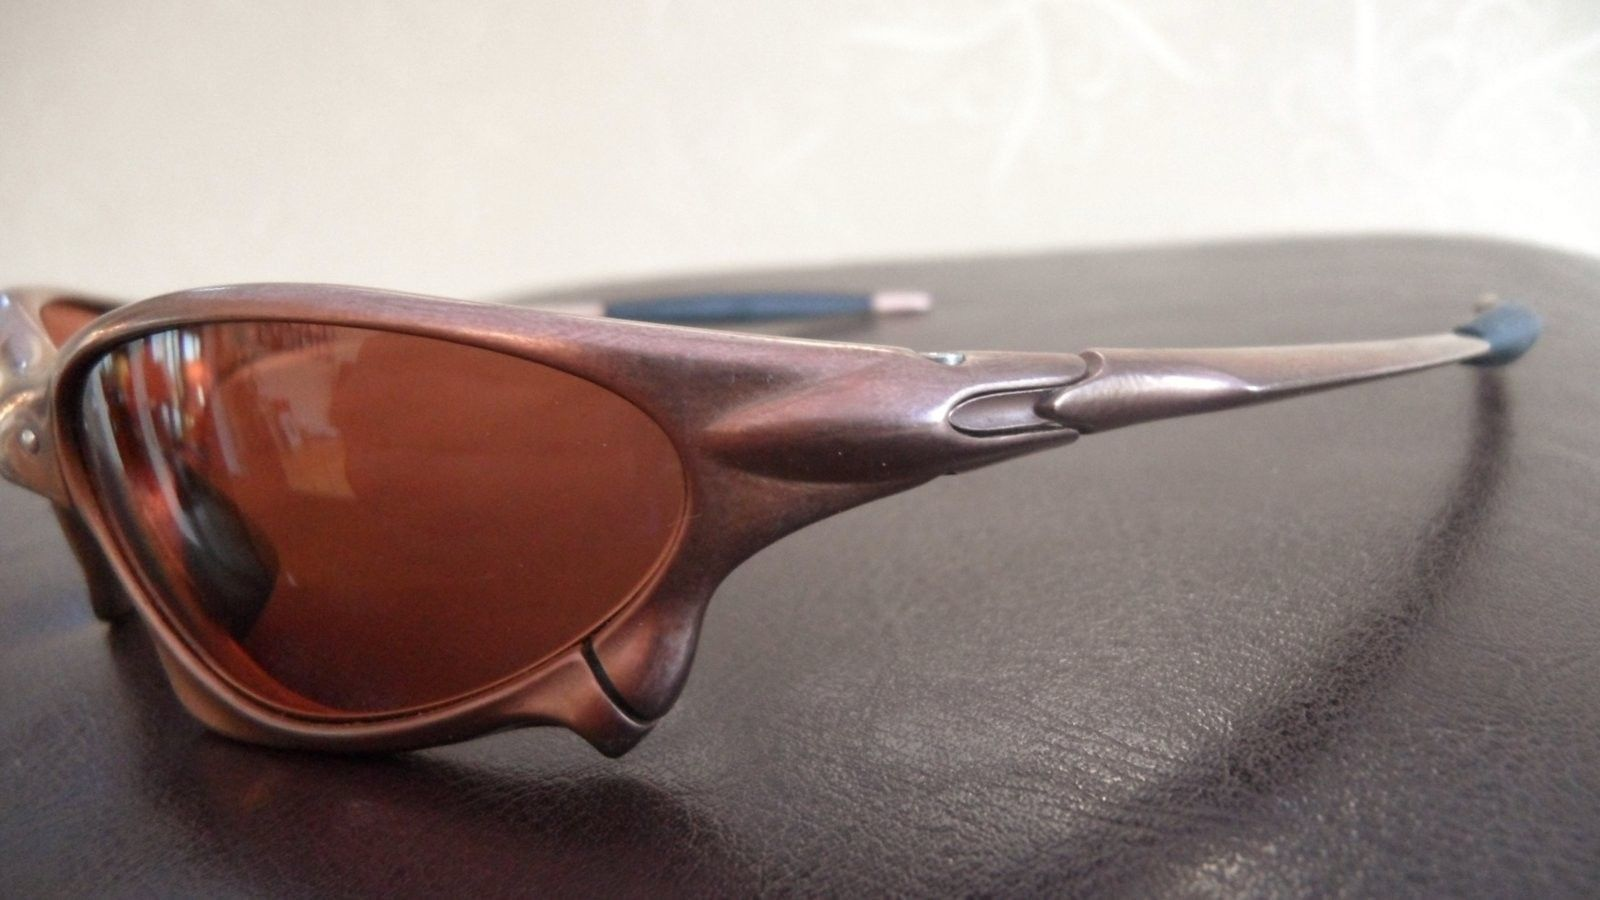 Penny Copper with VR28 lenses. Correctly Labelled Box but wrong serial. - SAM_0003.JPG